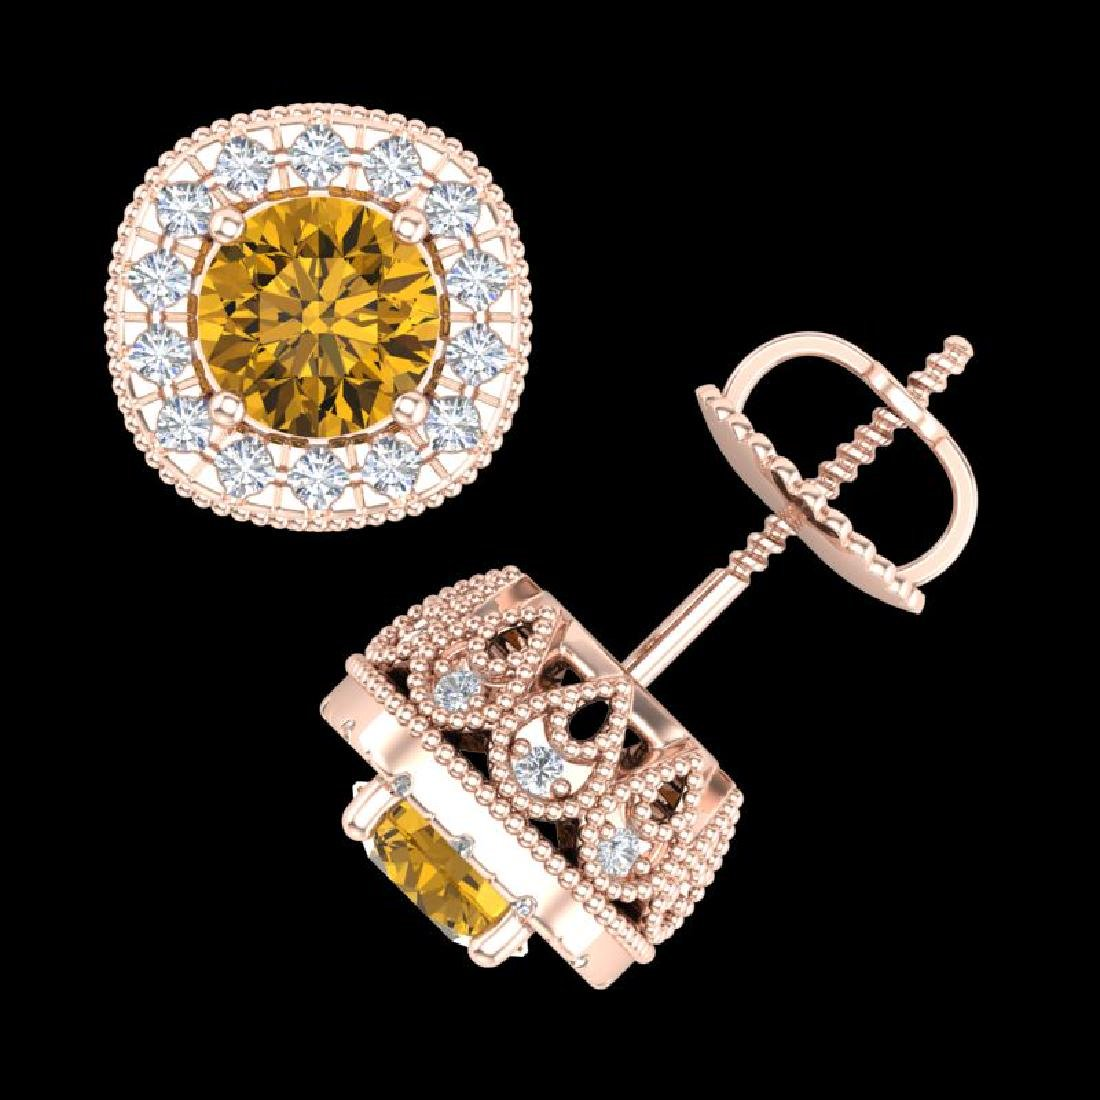 1.69 CTW Intense Fancy Yellow Diamond Art Deco Stud - 2